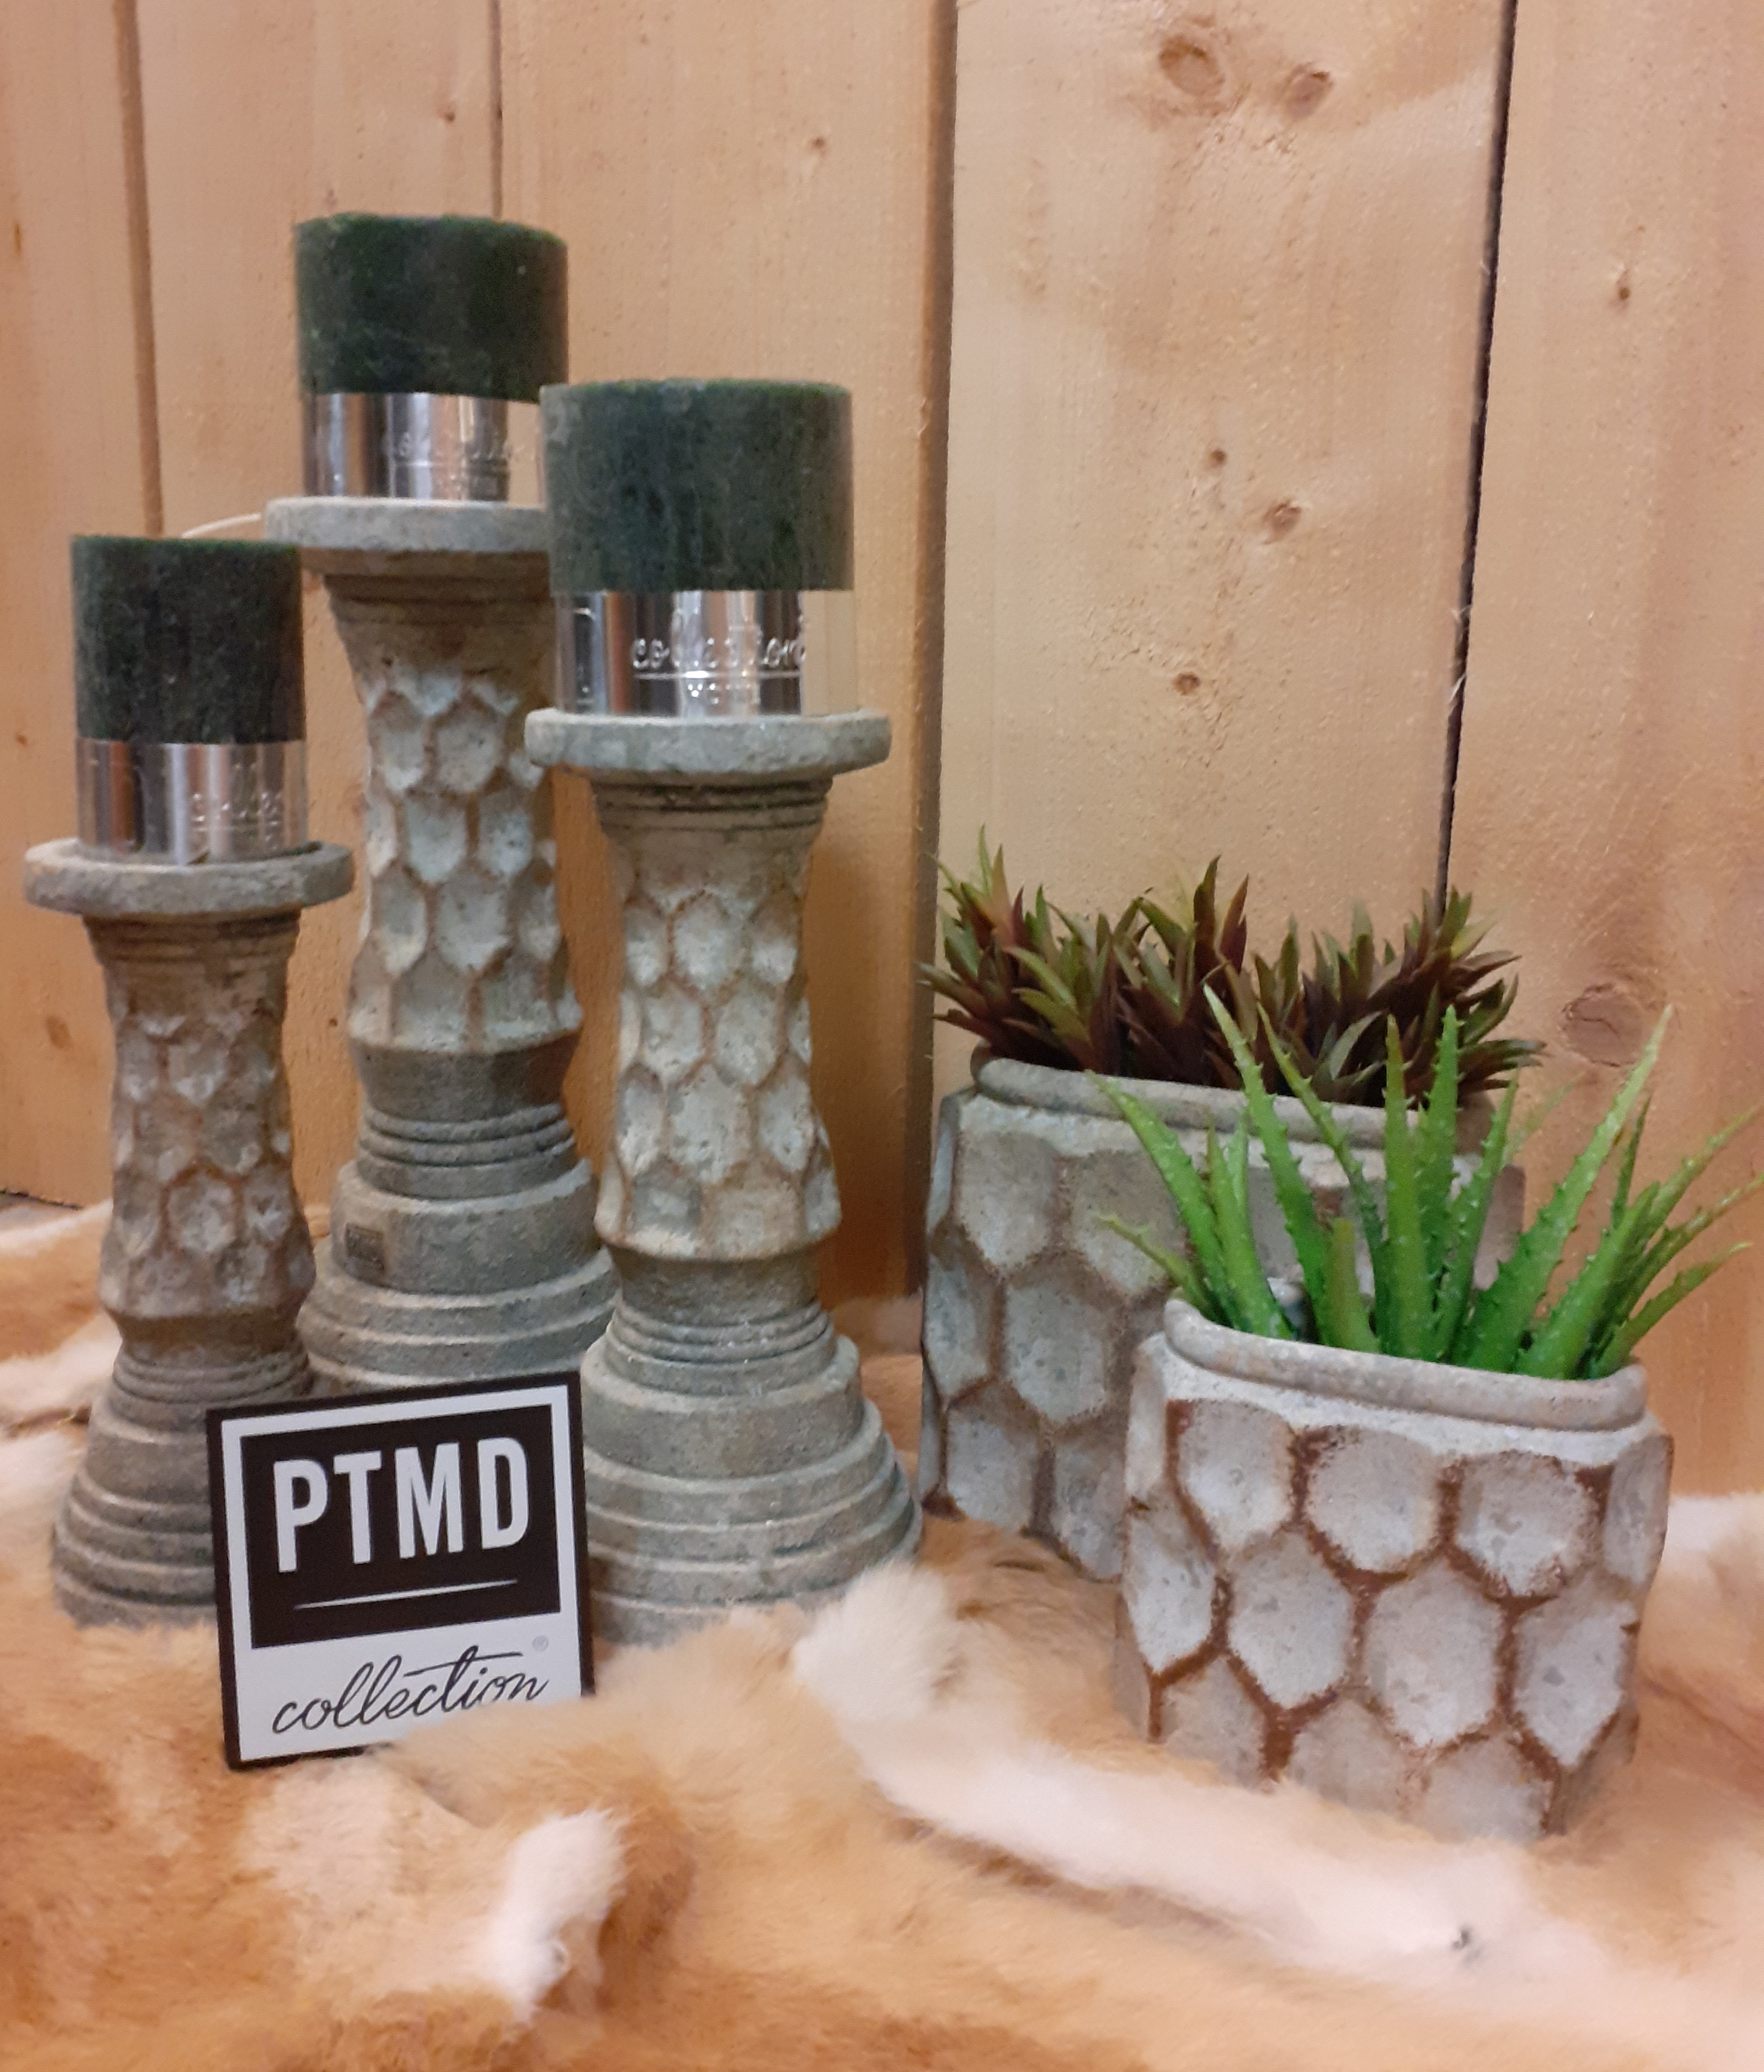 PTMD collectie